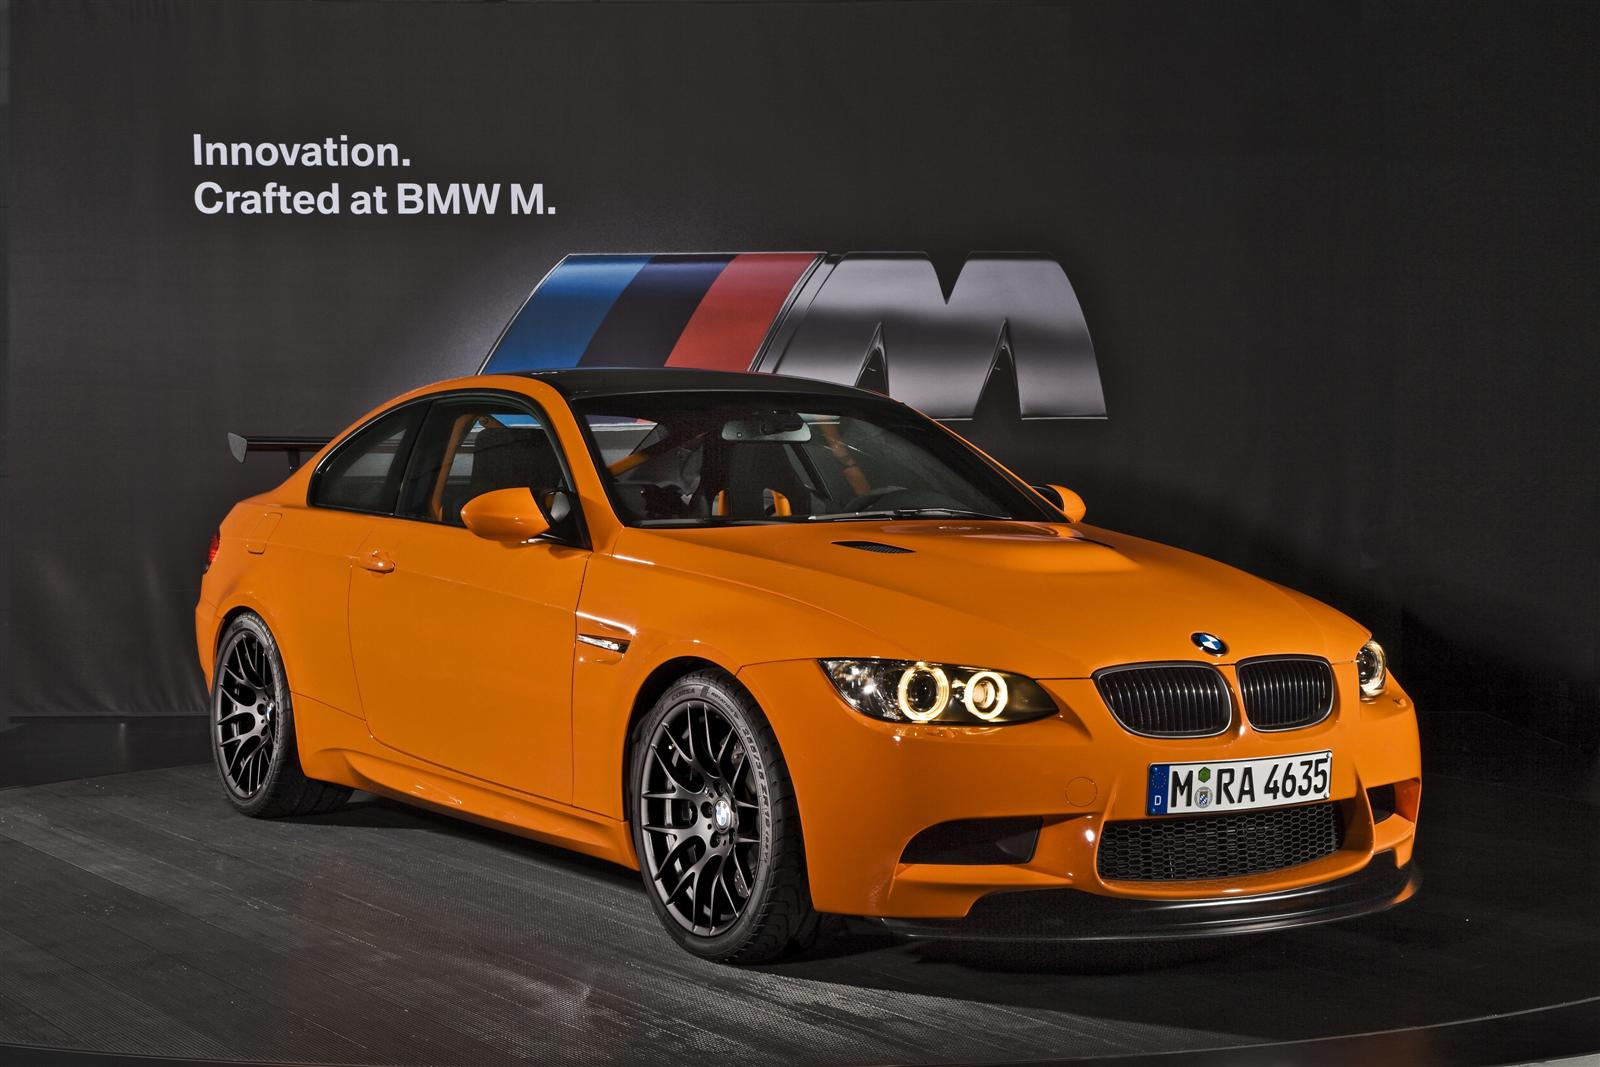 bmw heaven specification database specifications for bmw m3 gts e92 m dct coupe 2010 now. Black Bedroom Furniture Sets. Home Design Ideas